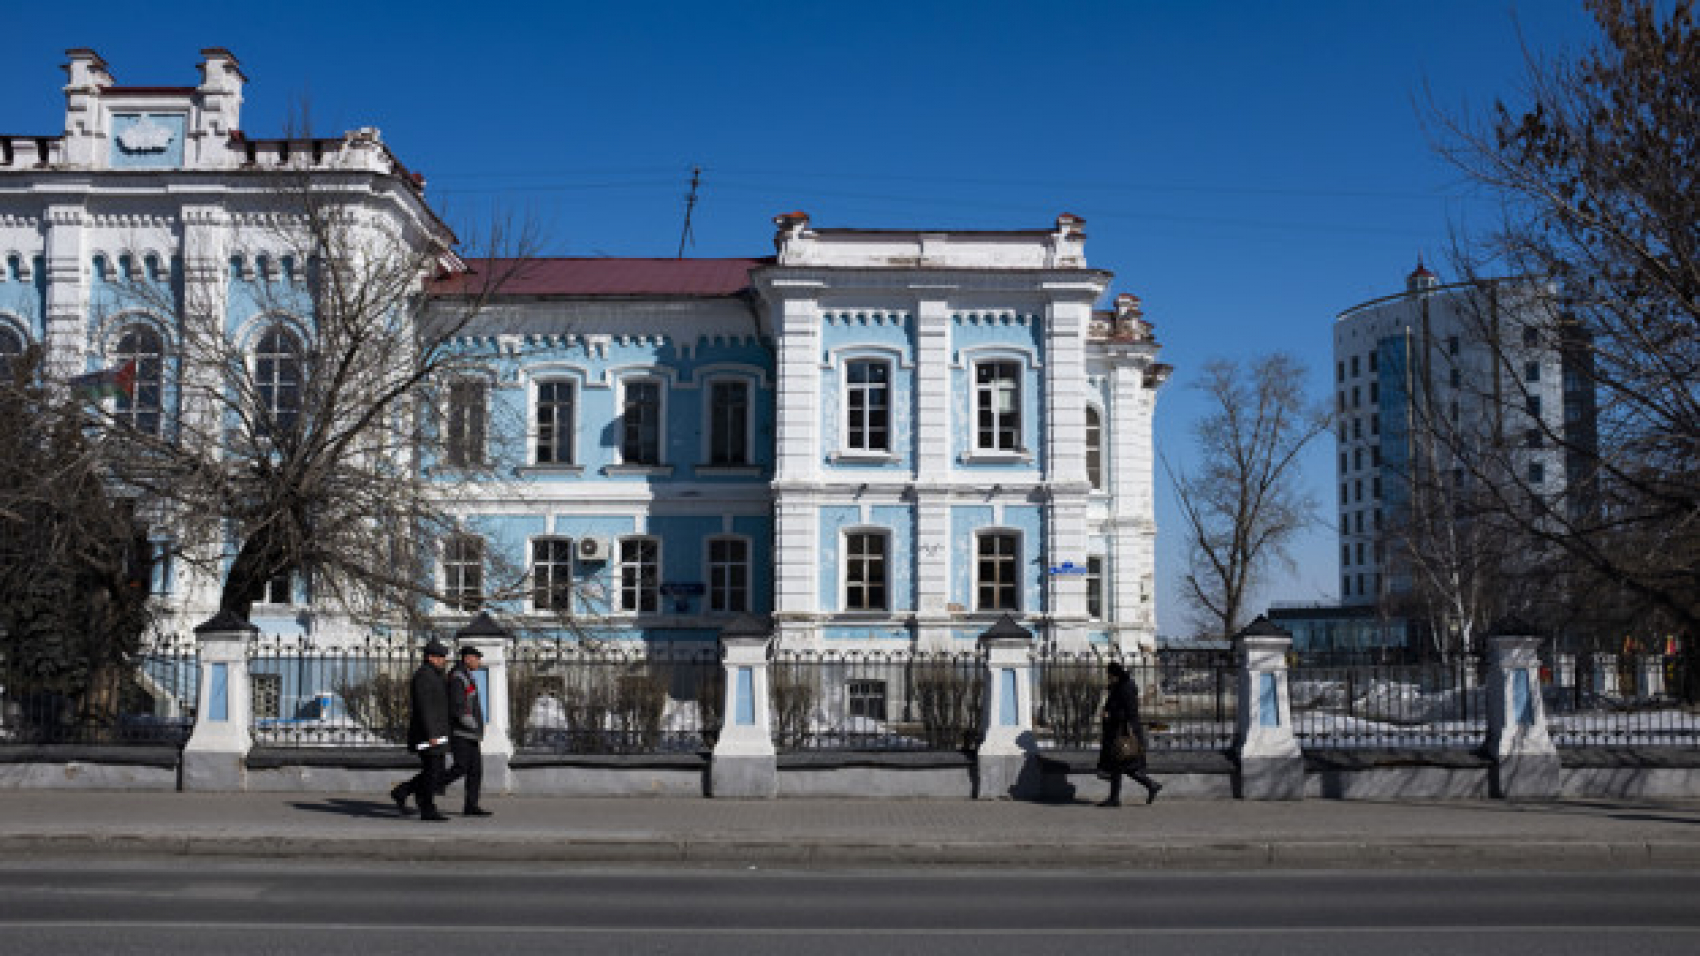 Tyumen, Russia, March 24 2017. State agrarian University of Northern TRANS-Urals, former Tyumen agricultural Academy. The concept of education, culture, history.